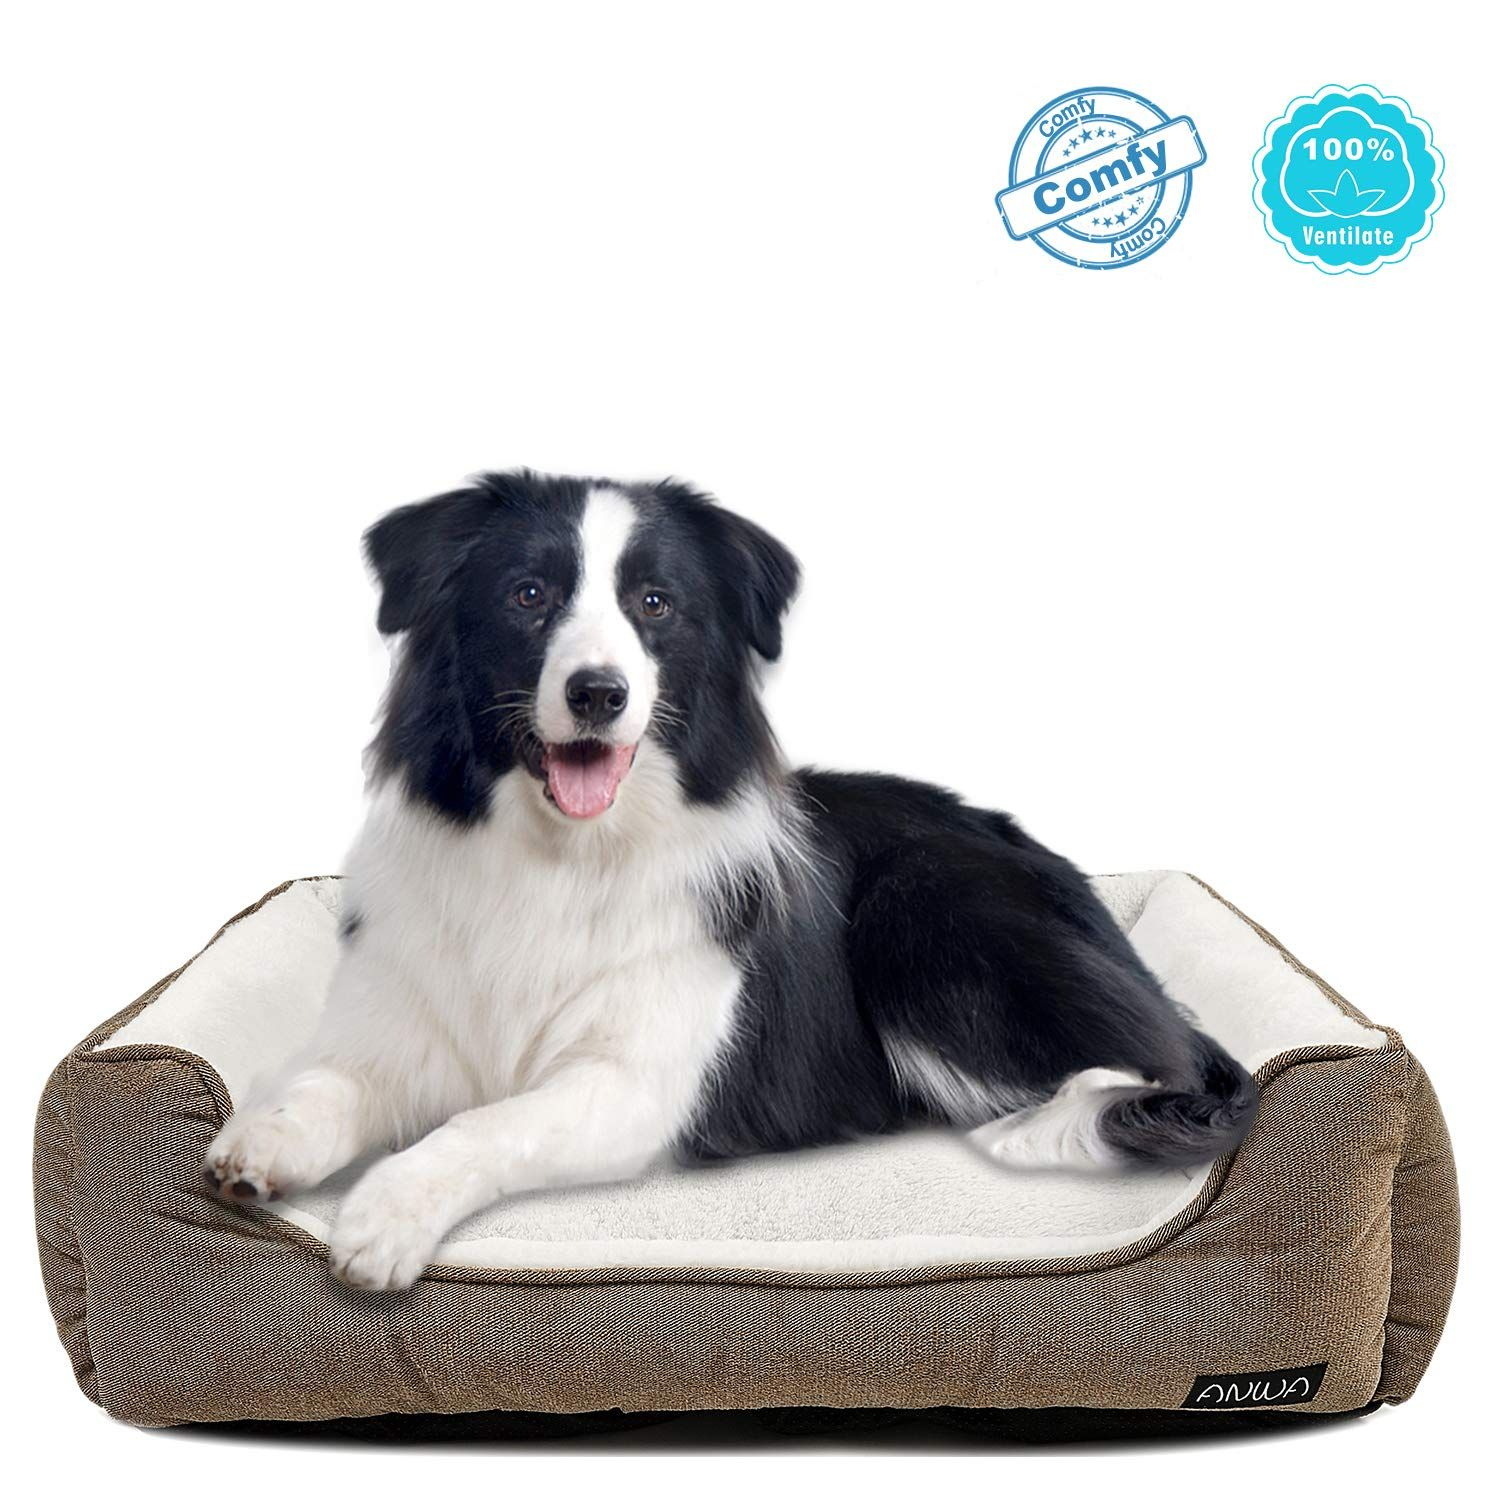 ANWA Durable Dog Bed Machine Washable Large Dog Bed Square